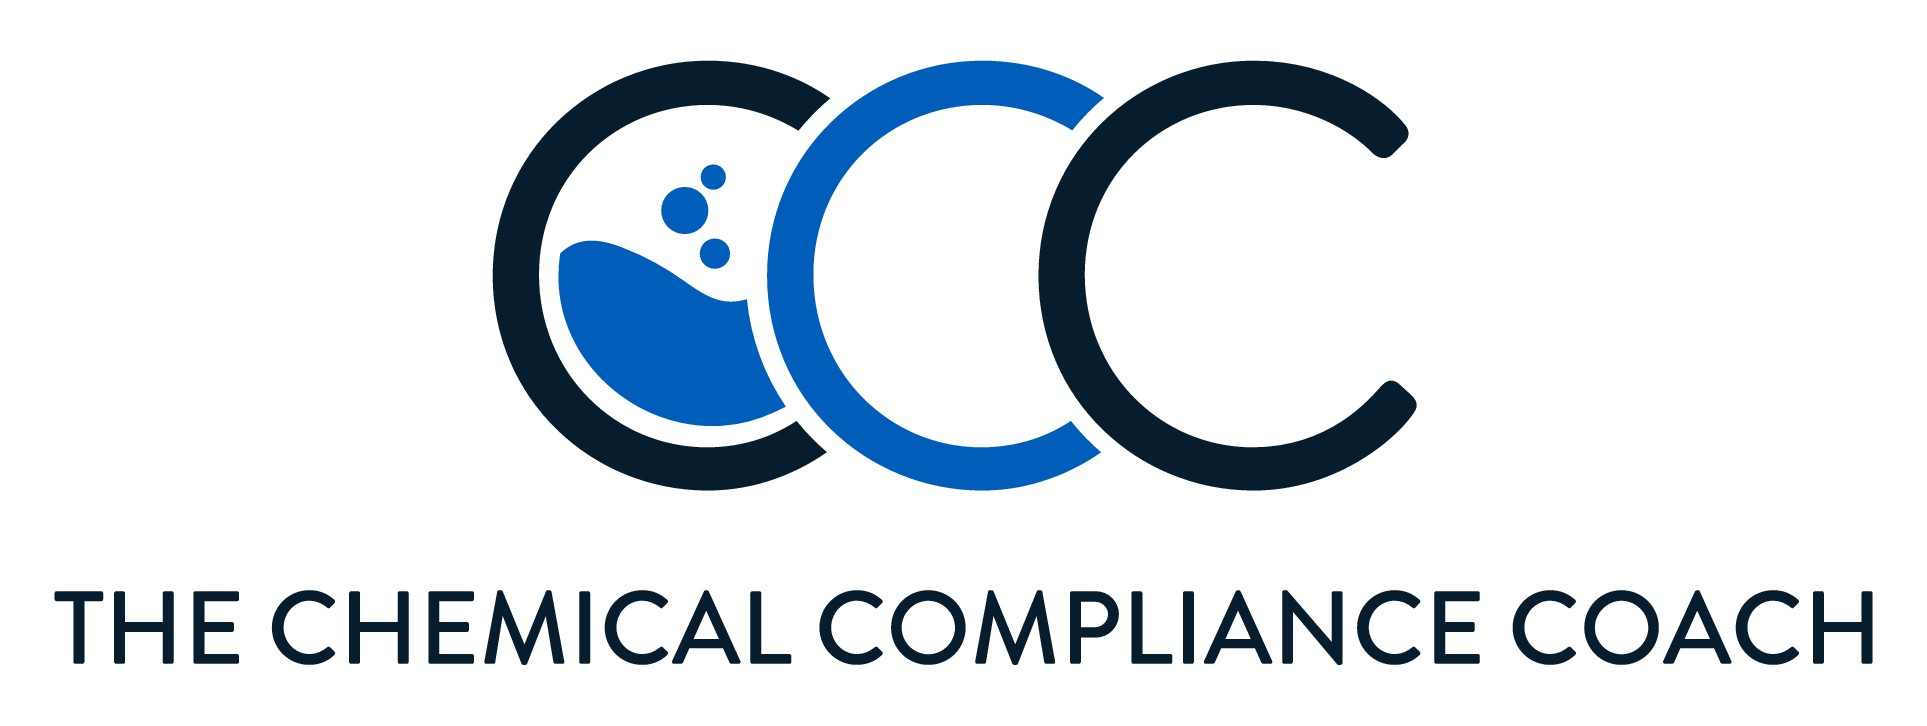 Industrial yet personal? The Chemical Compliance Coach needs your design skills